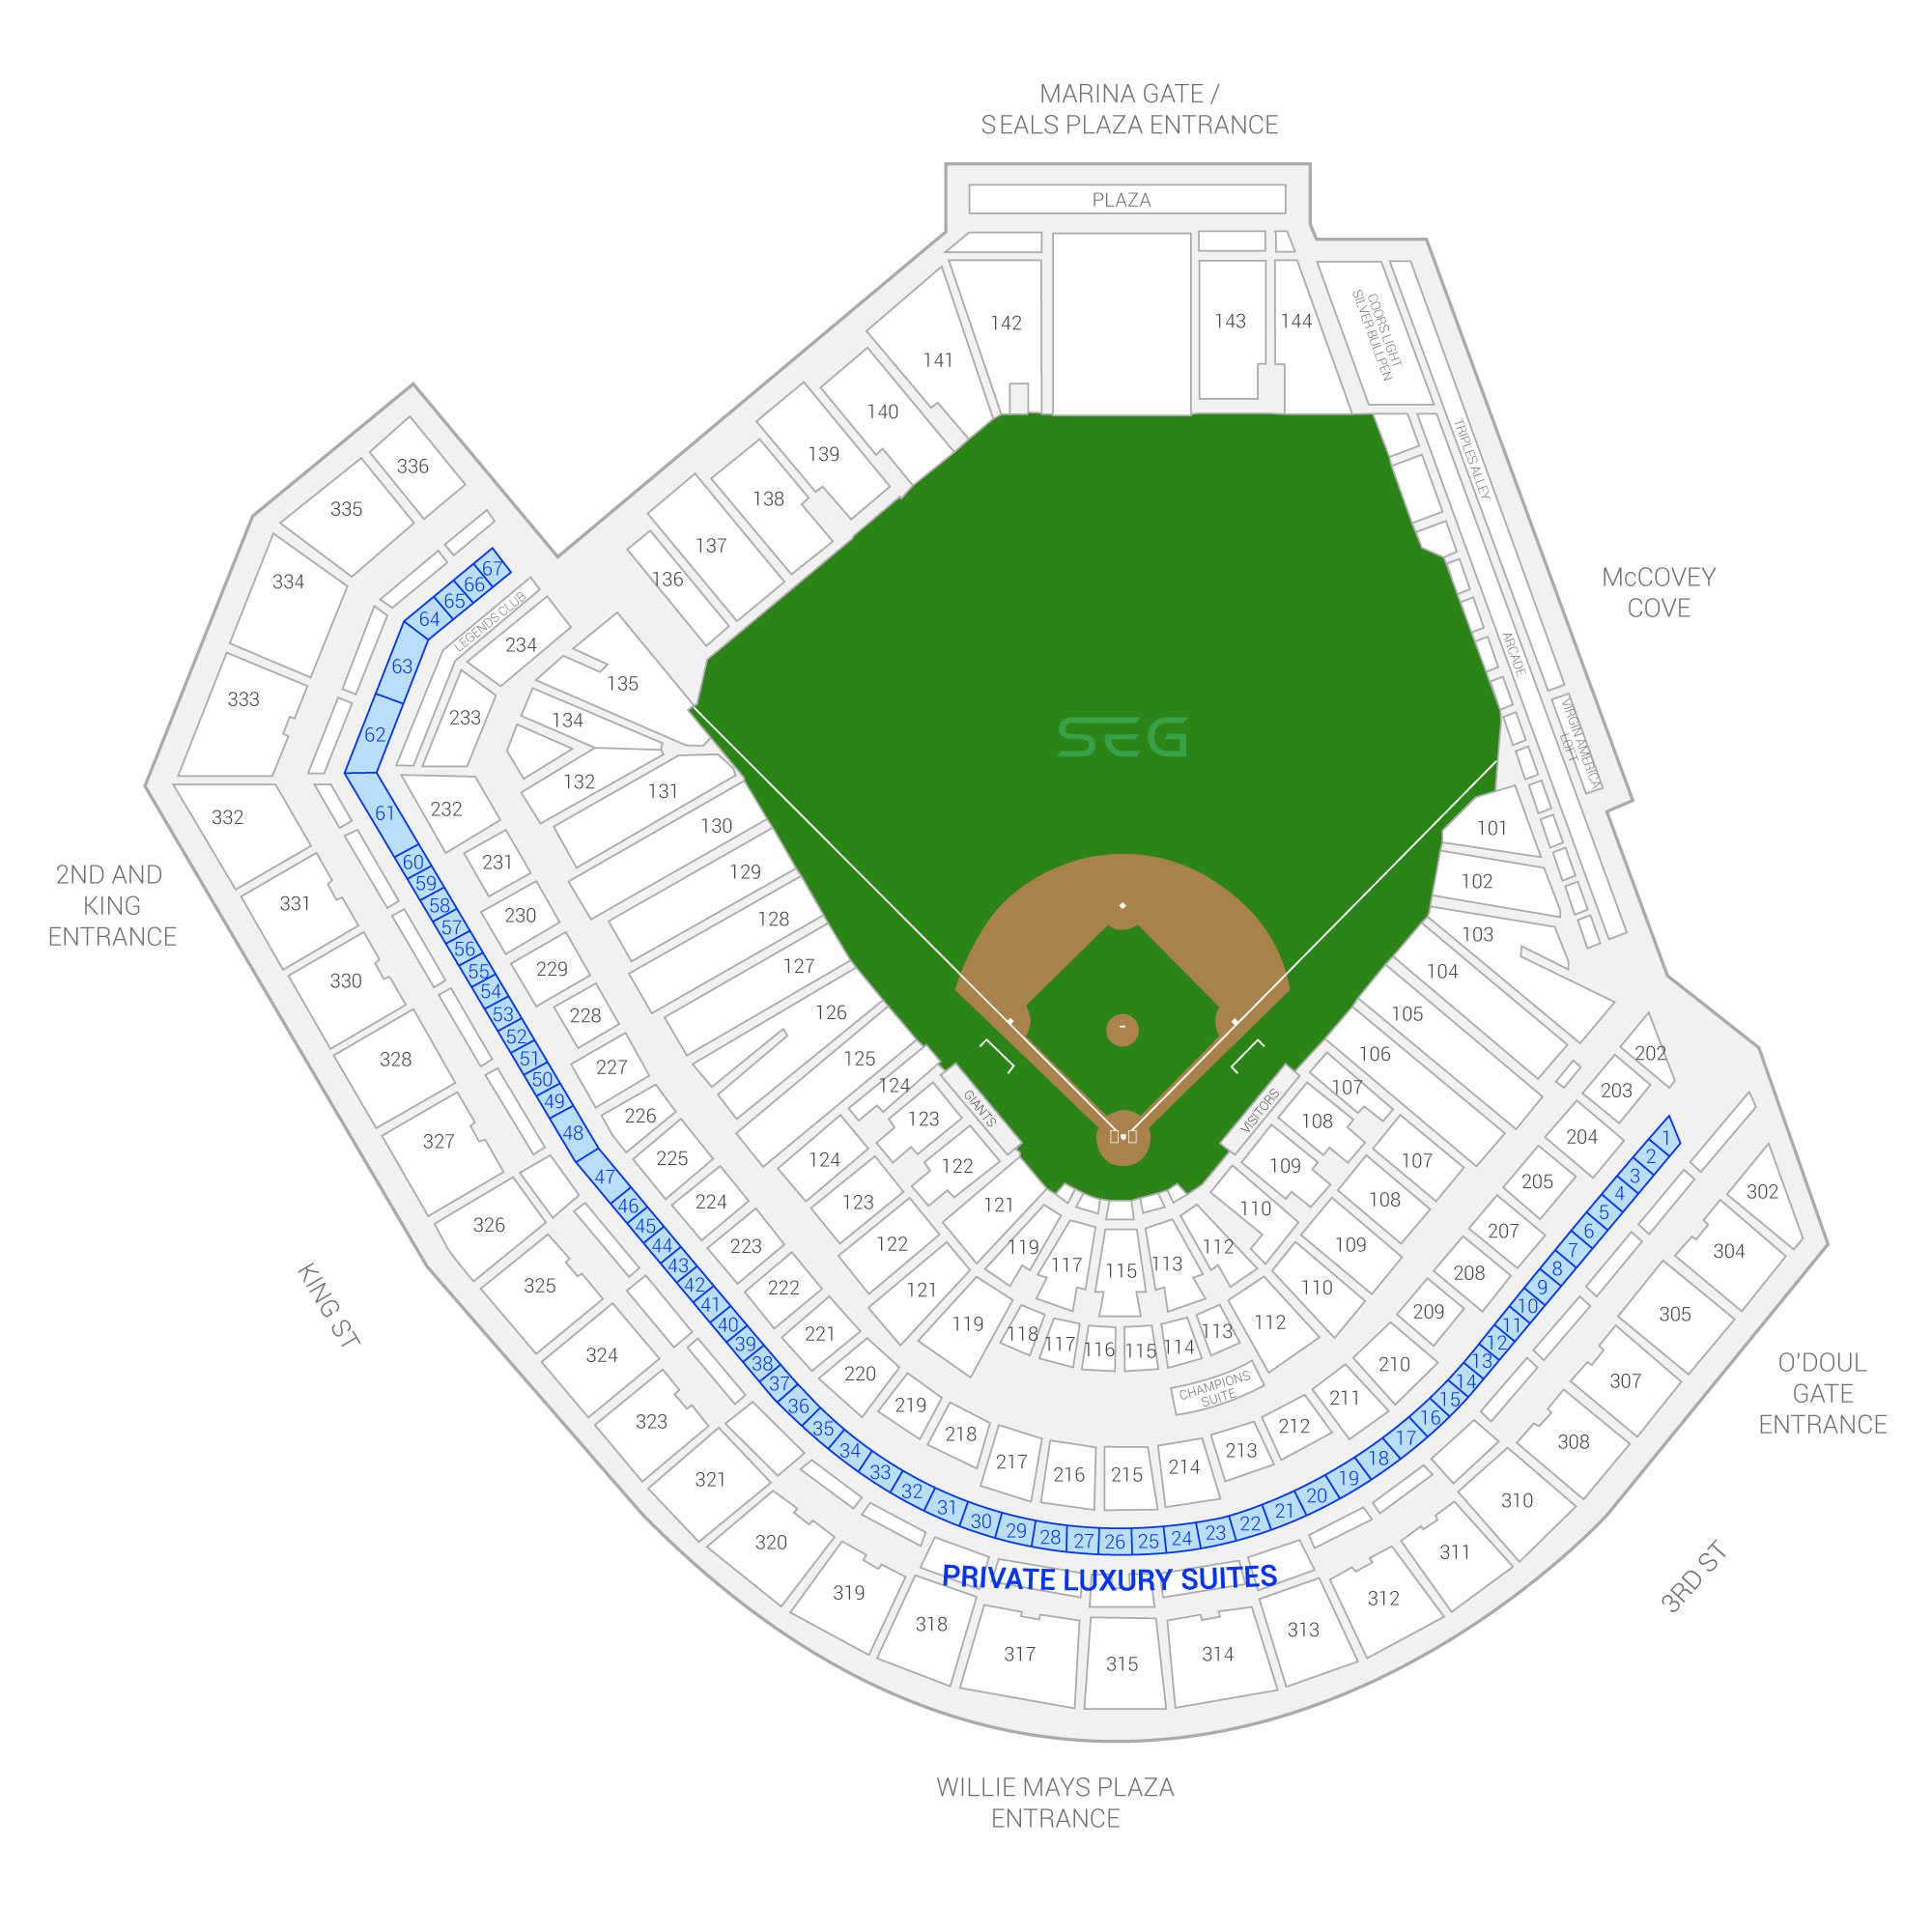 Oracle Park / San Francisco Giants Suite Map and Seating Chart